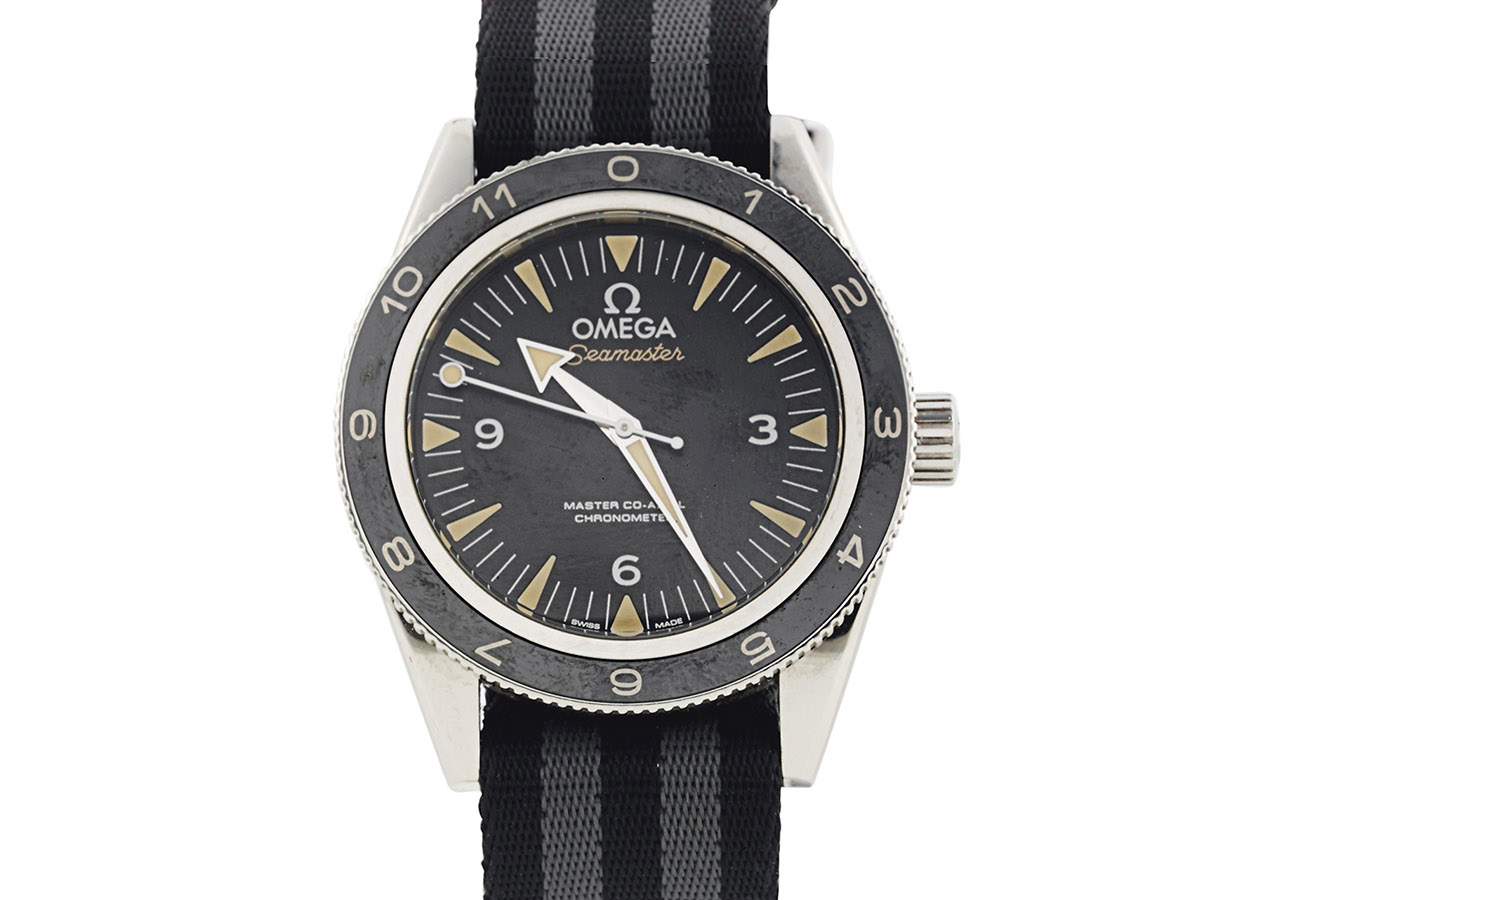 Christie's James Bond Spectre Auction - Prototype one of eight Omega Seamaster 300 worn by Daniel Craig as James Bond